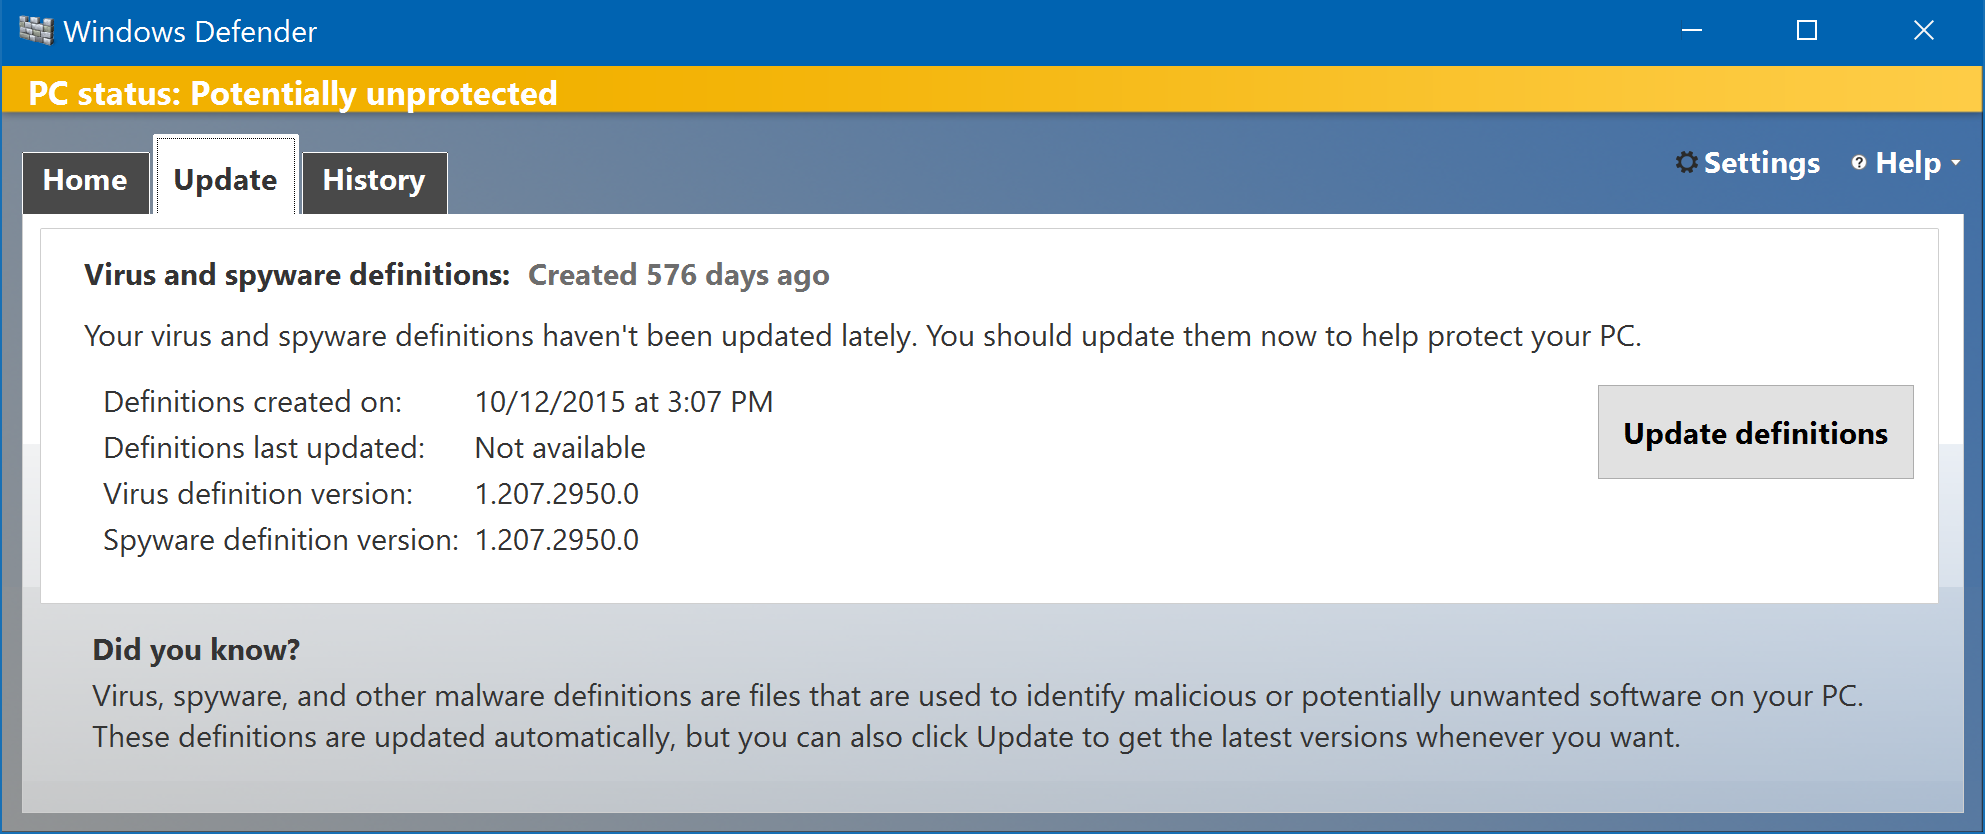 update virus definitions: windows defender